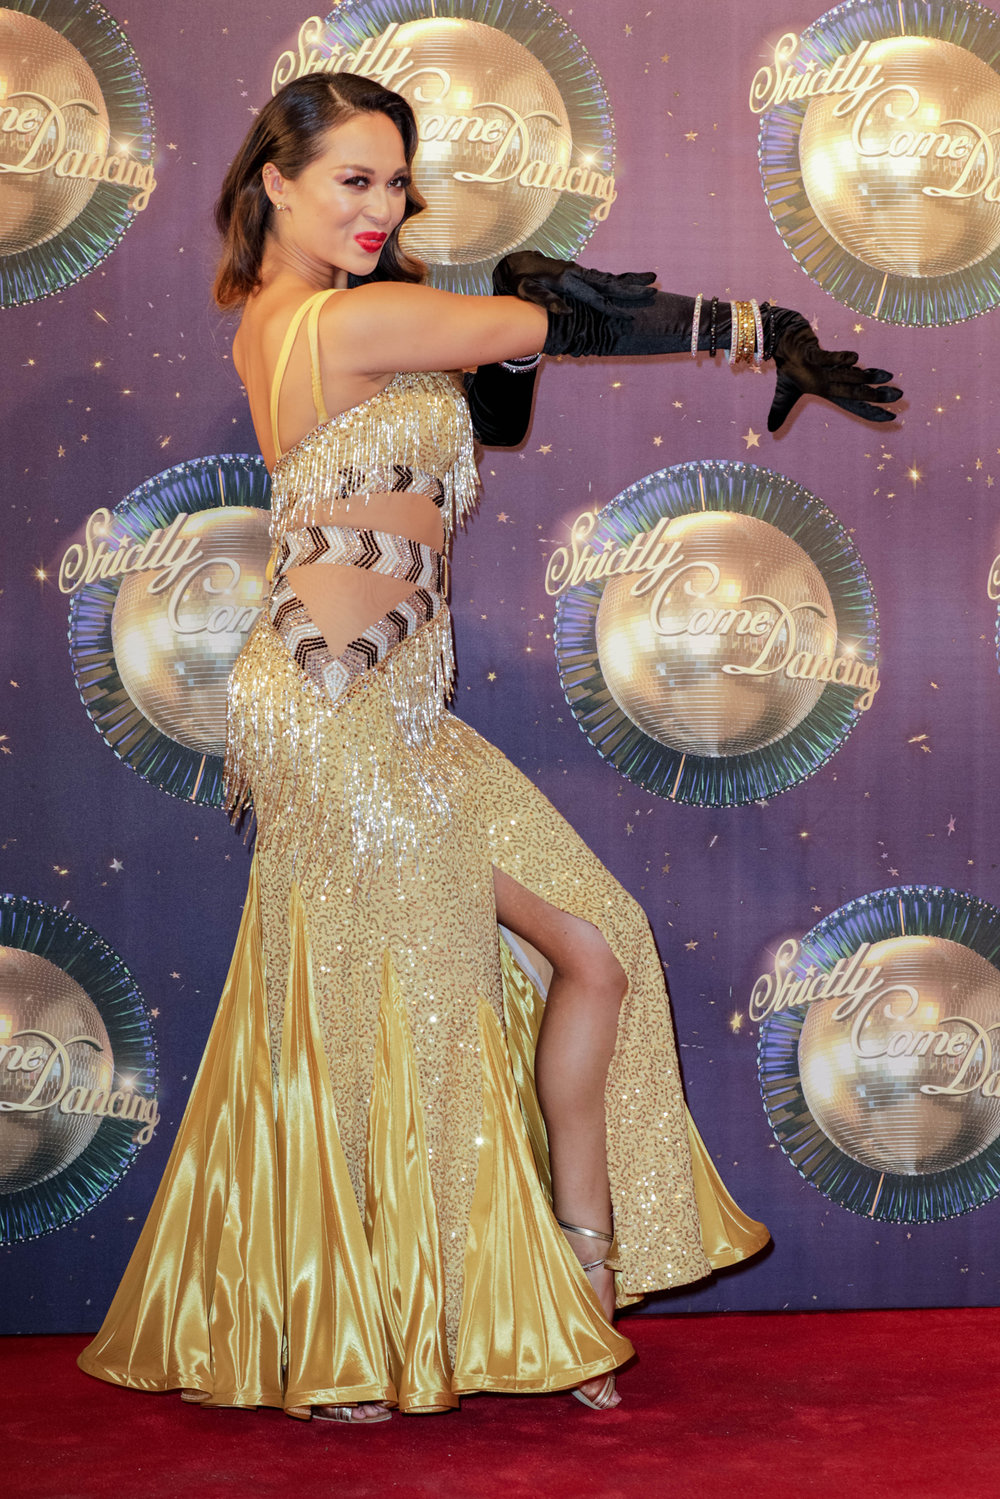 PHT_B5327_strictly_come_dancing_14141.JPG